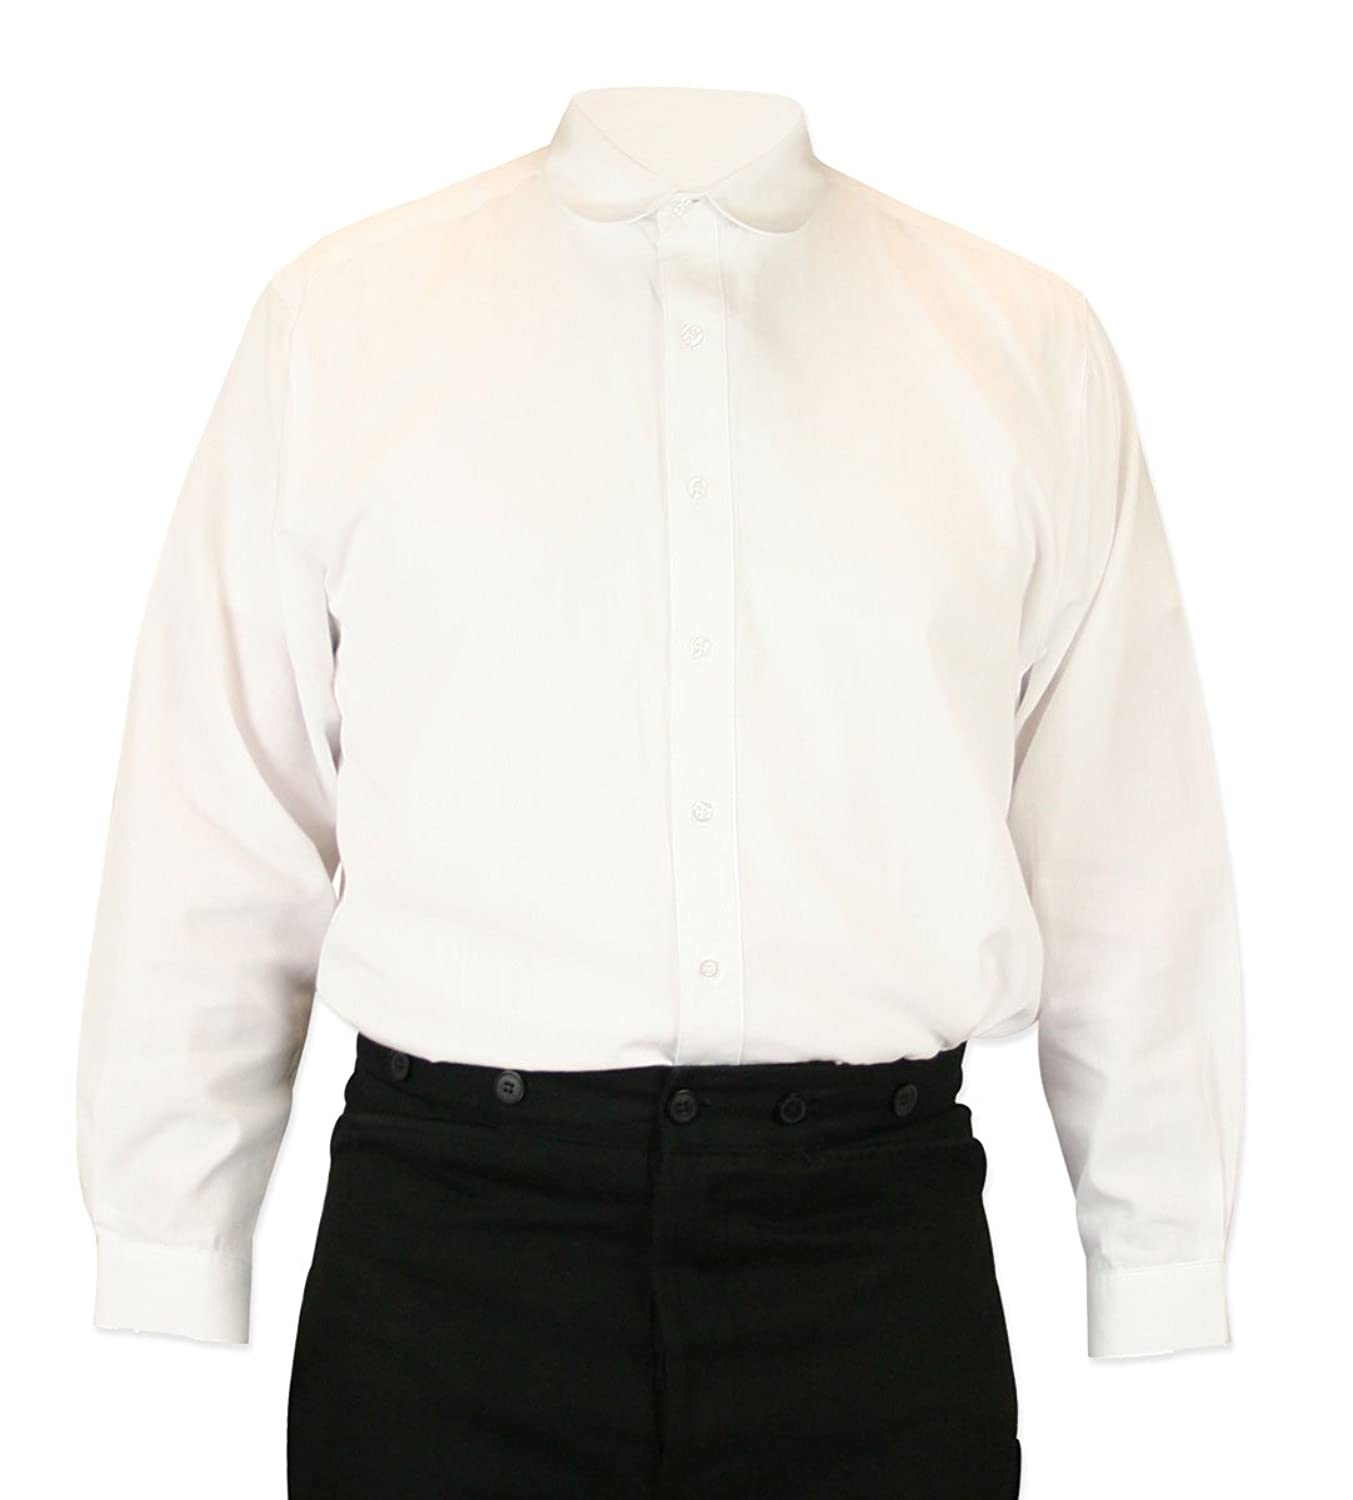 Men's Victorian Costume and Clothing Guide Virgil Club Collar Dress Shirt $59.95 AT vintagedancer.com